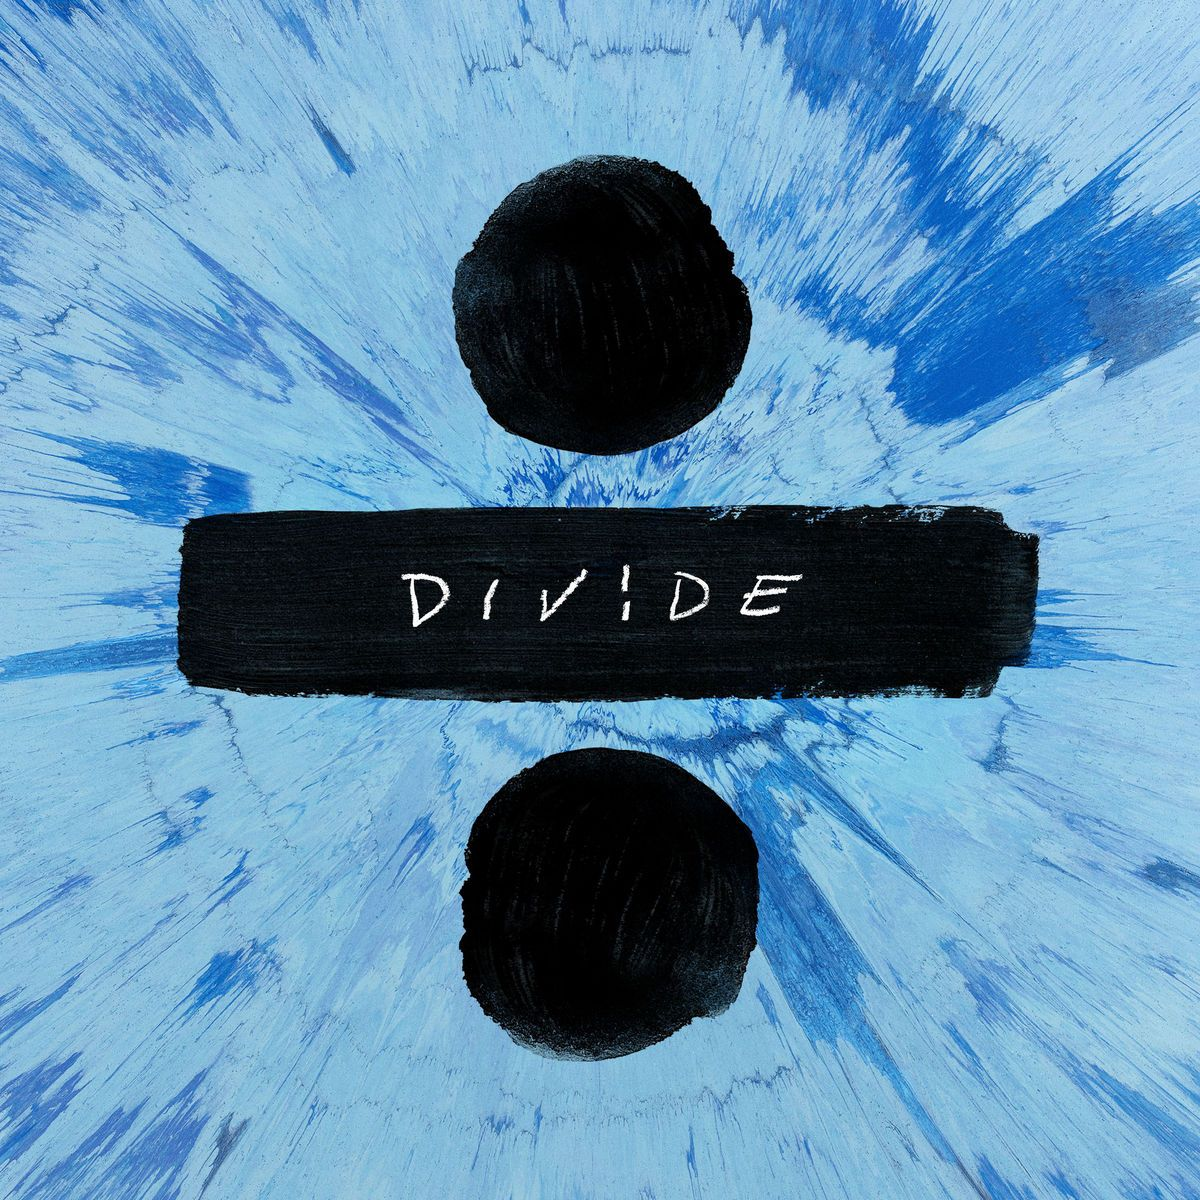 Ed Sheeran - Divide album cover